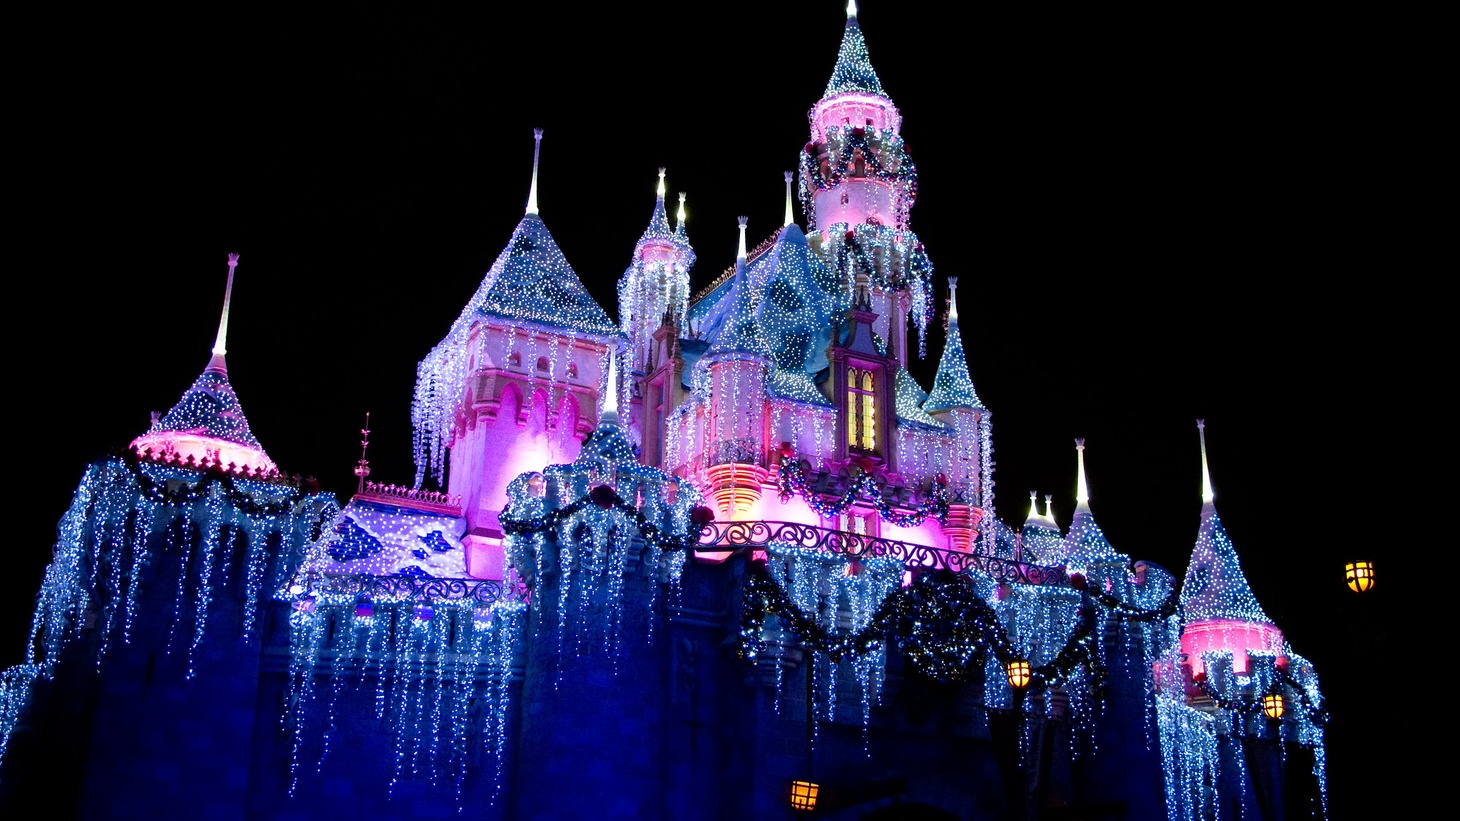 Disneyland is usually lit up for Christmas, but the park will be closed this year due to the coronavirus pandemic.